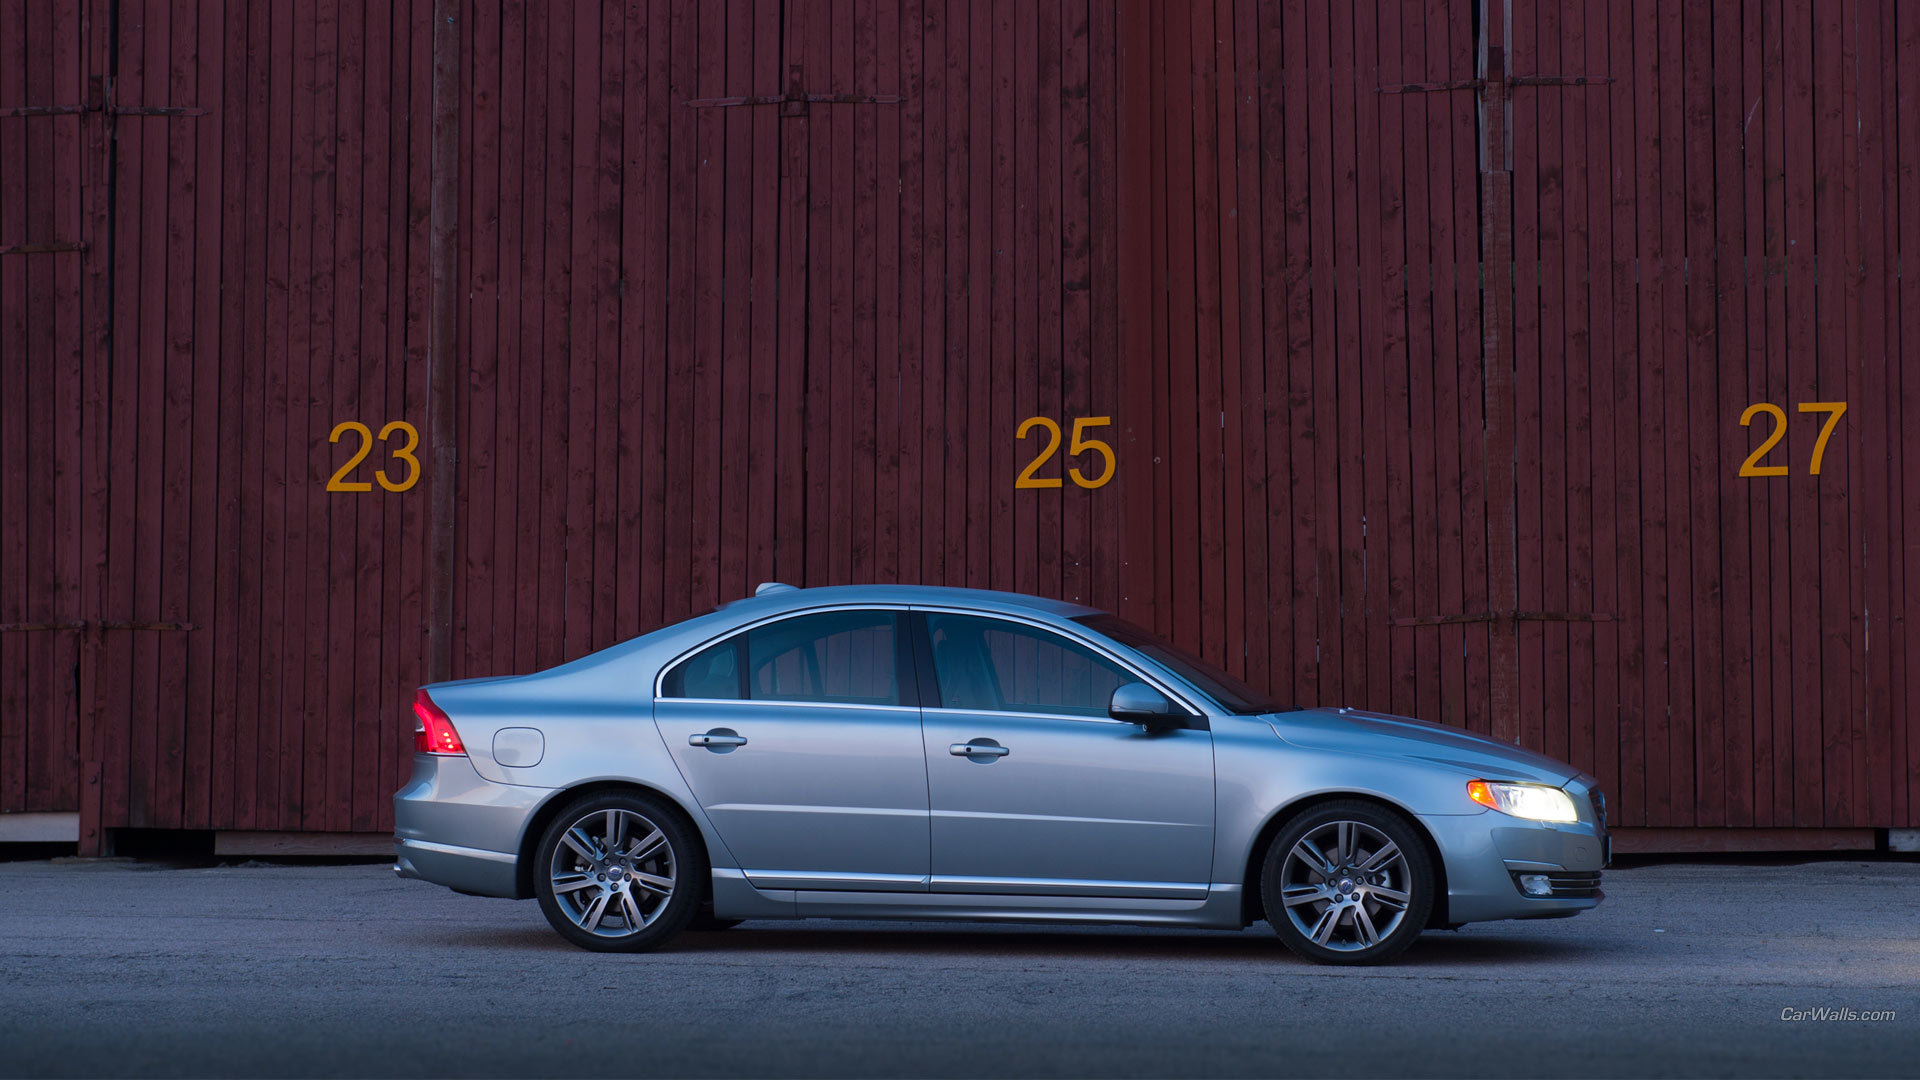 Free download Volvo S80 wallpaper ID:6912 1080p for PC